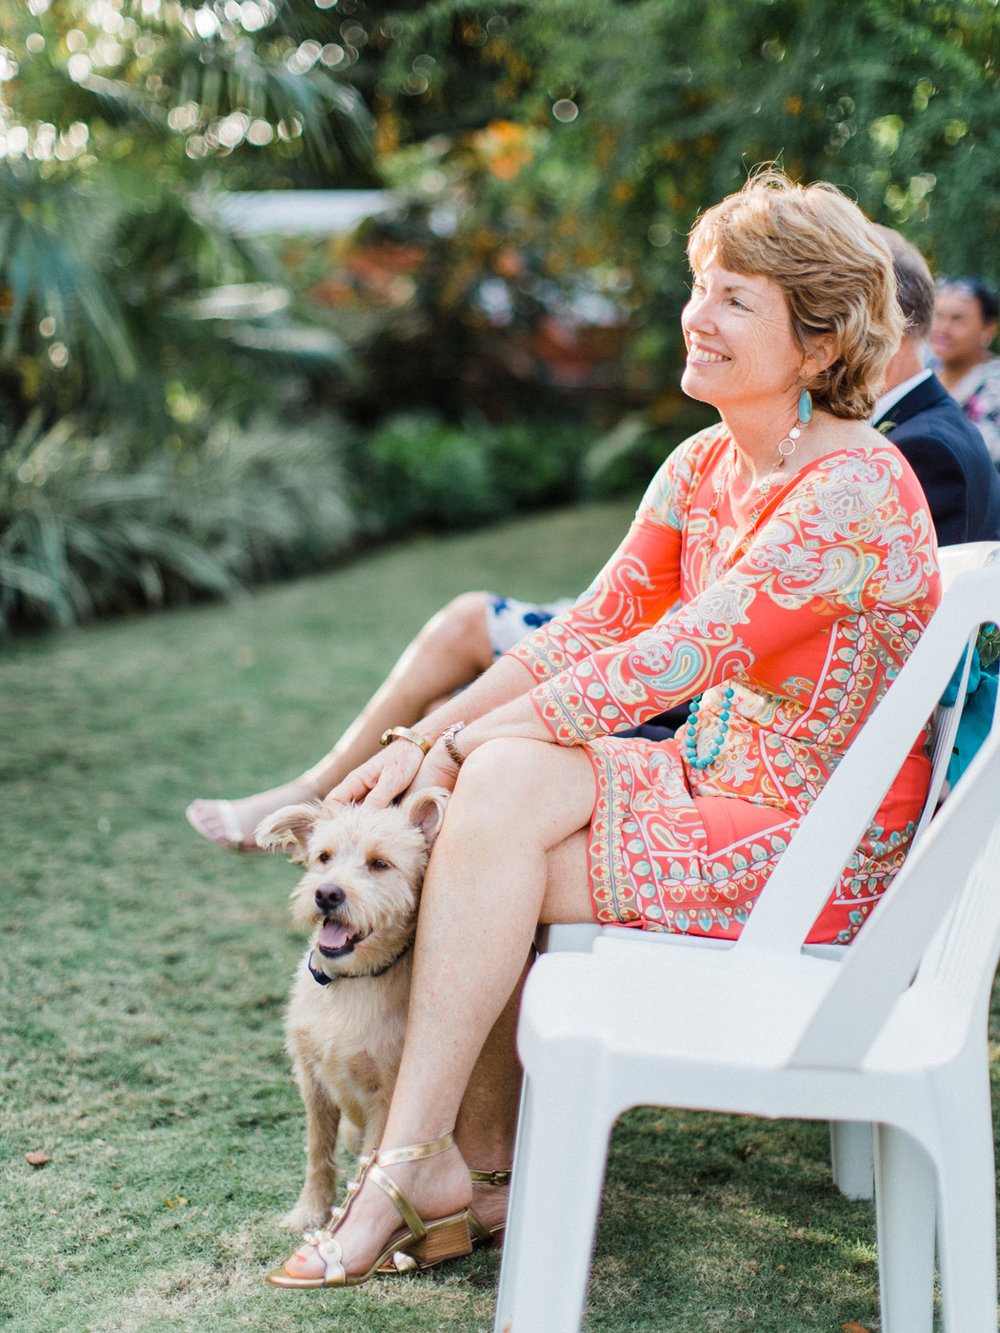 Include_dogs_in_your_wedding_photographs3.jpg